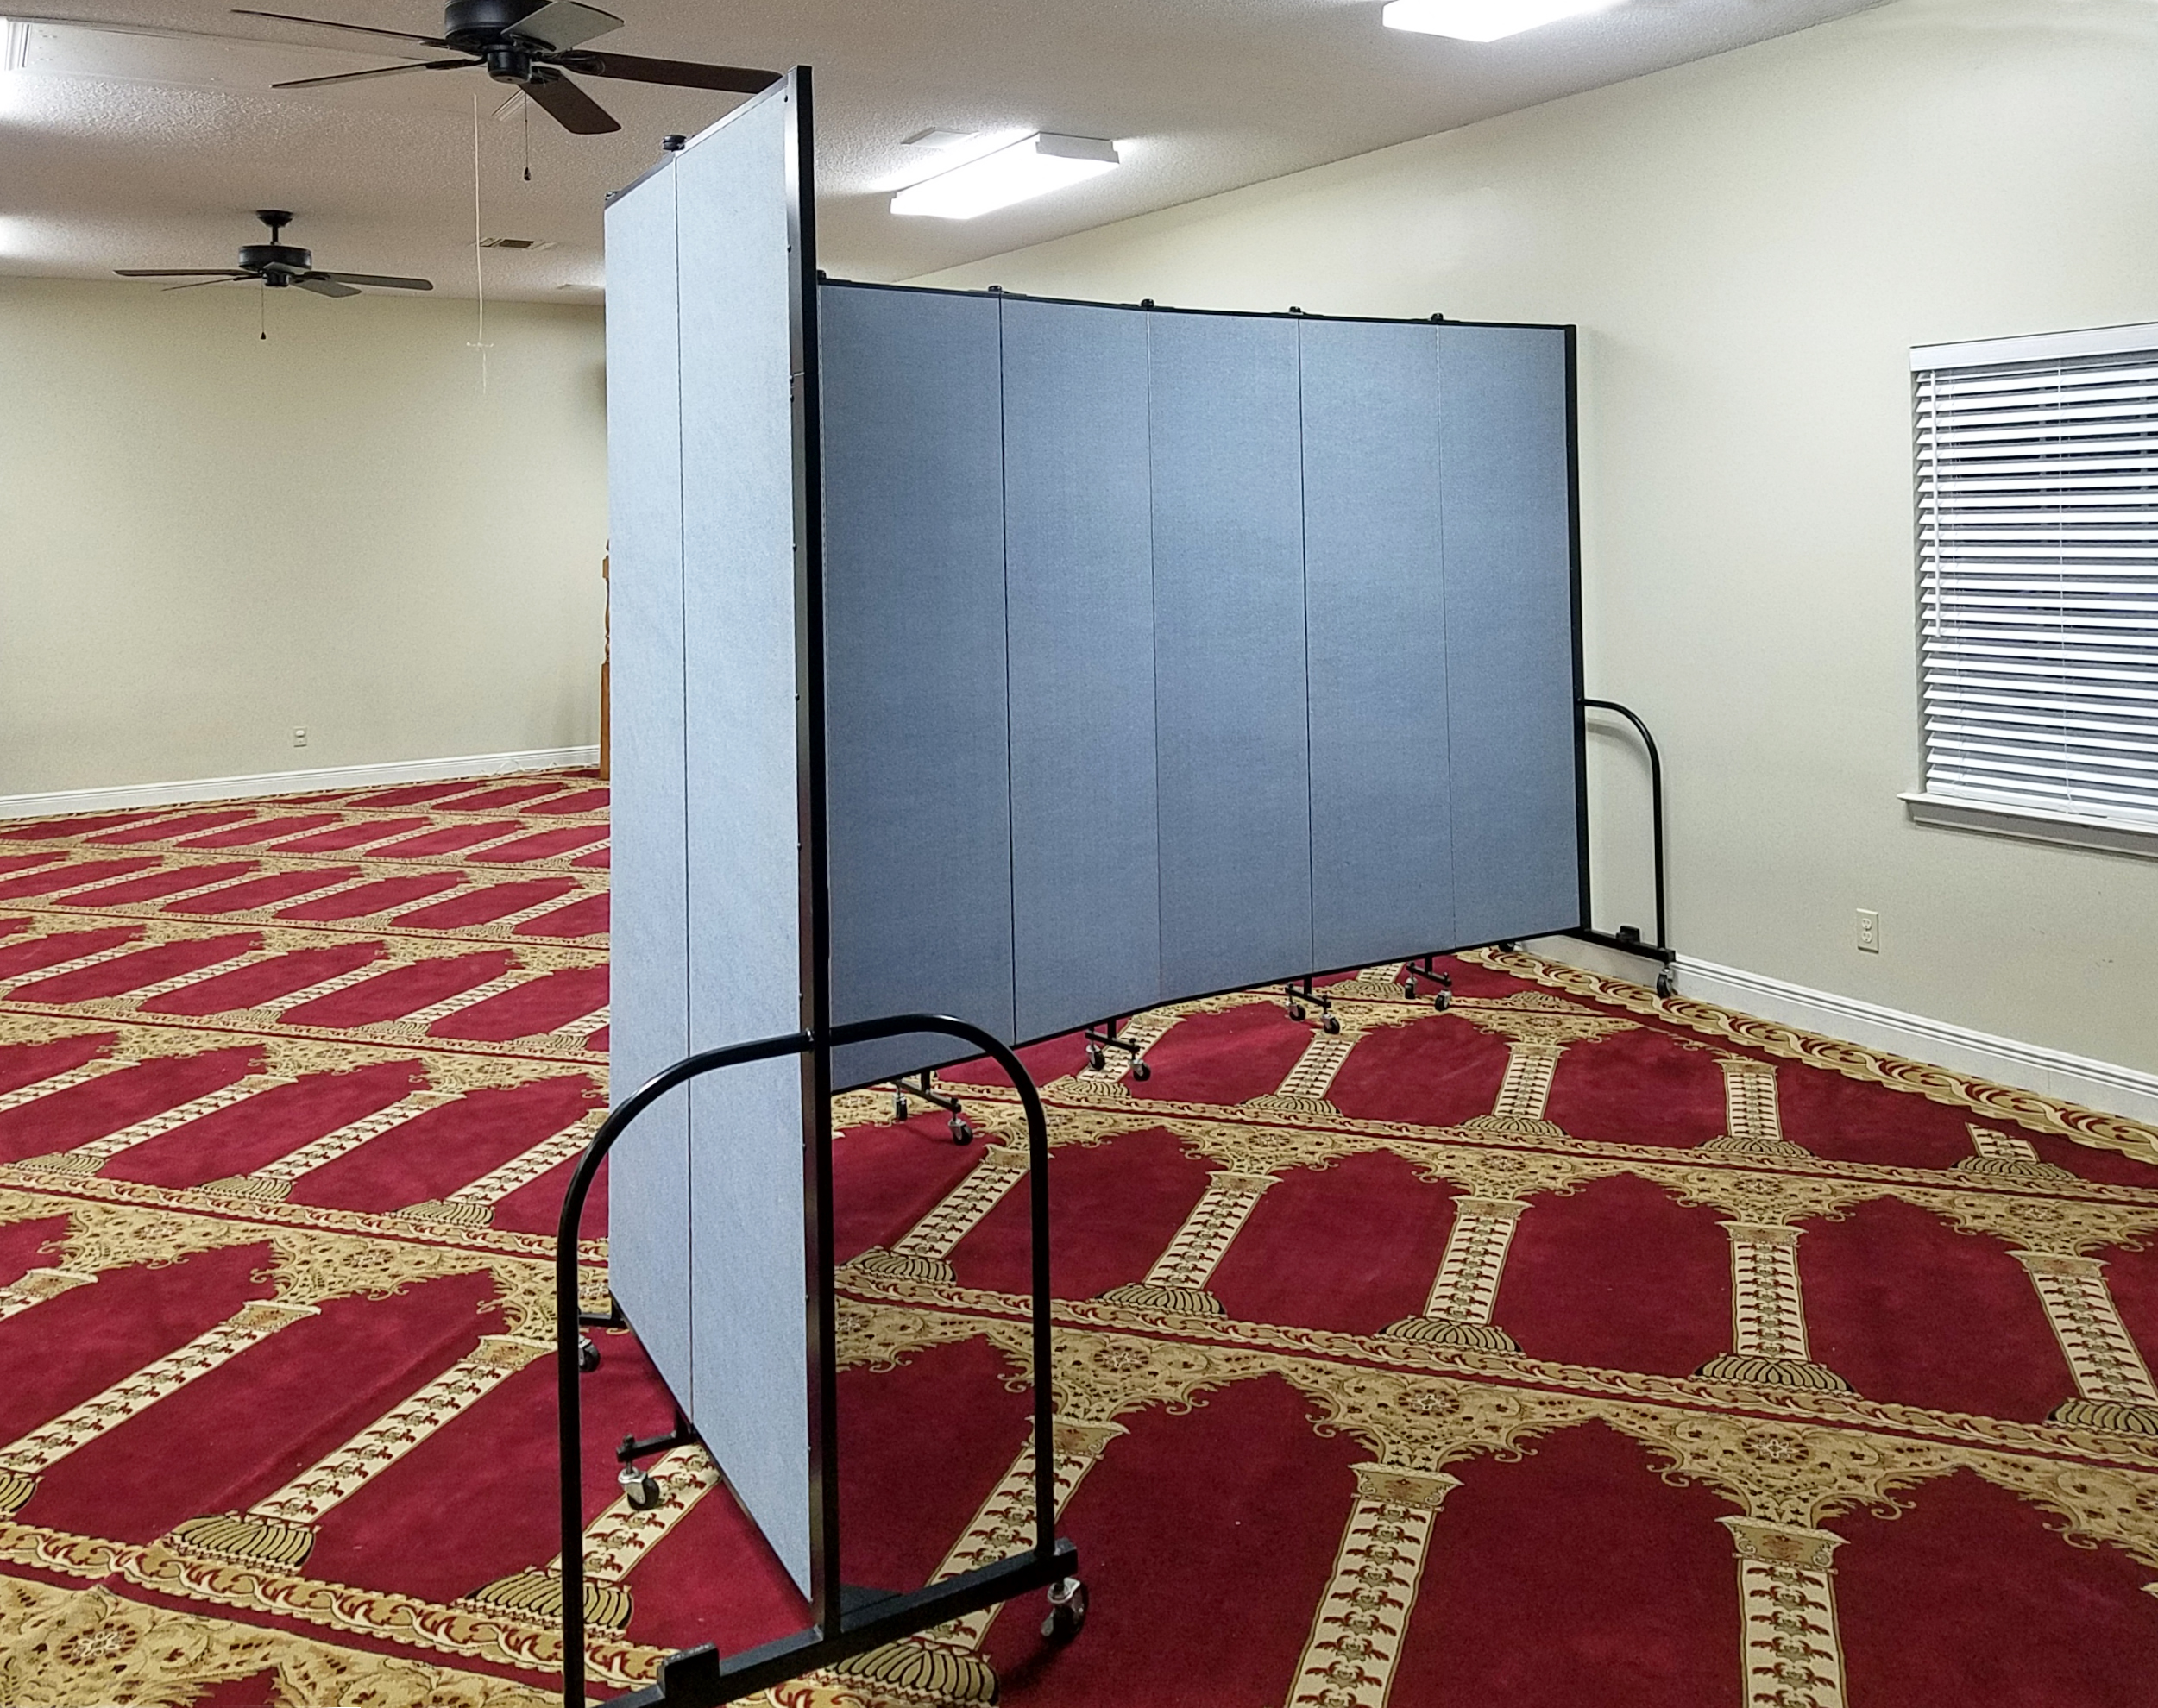 Ample room is provided behind a portable divider